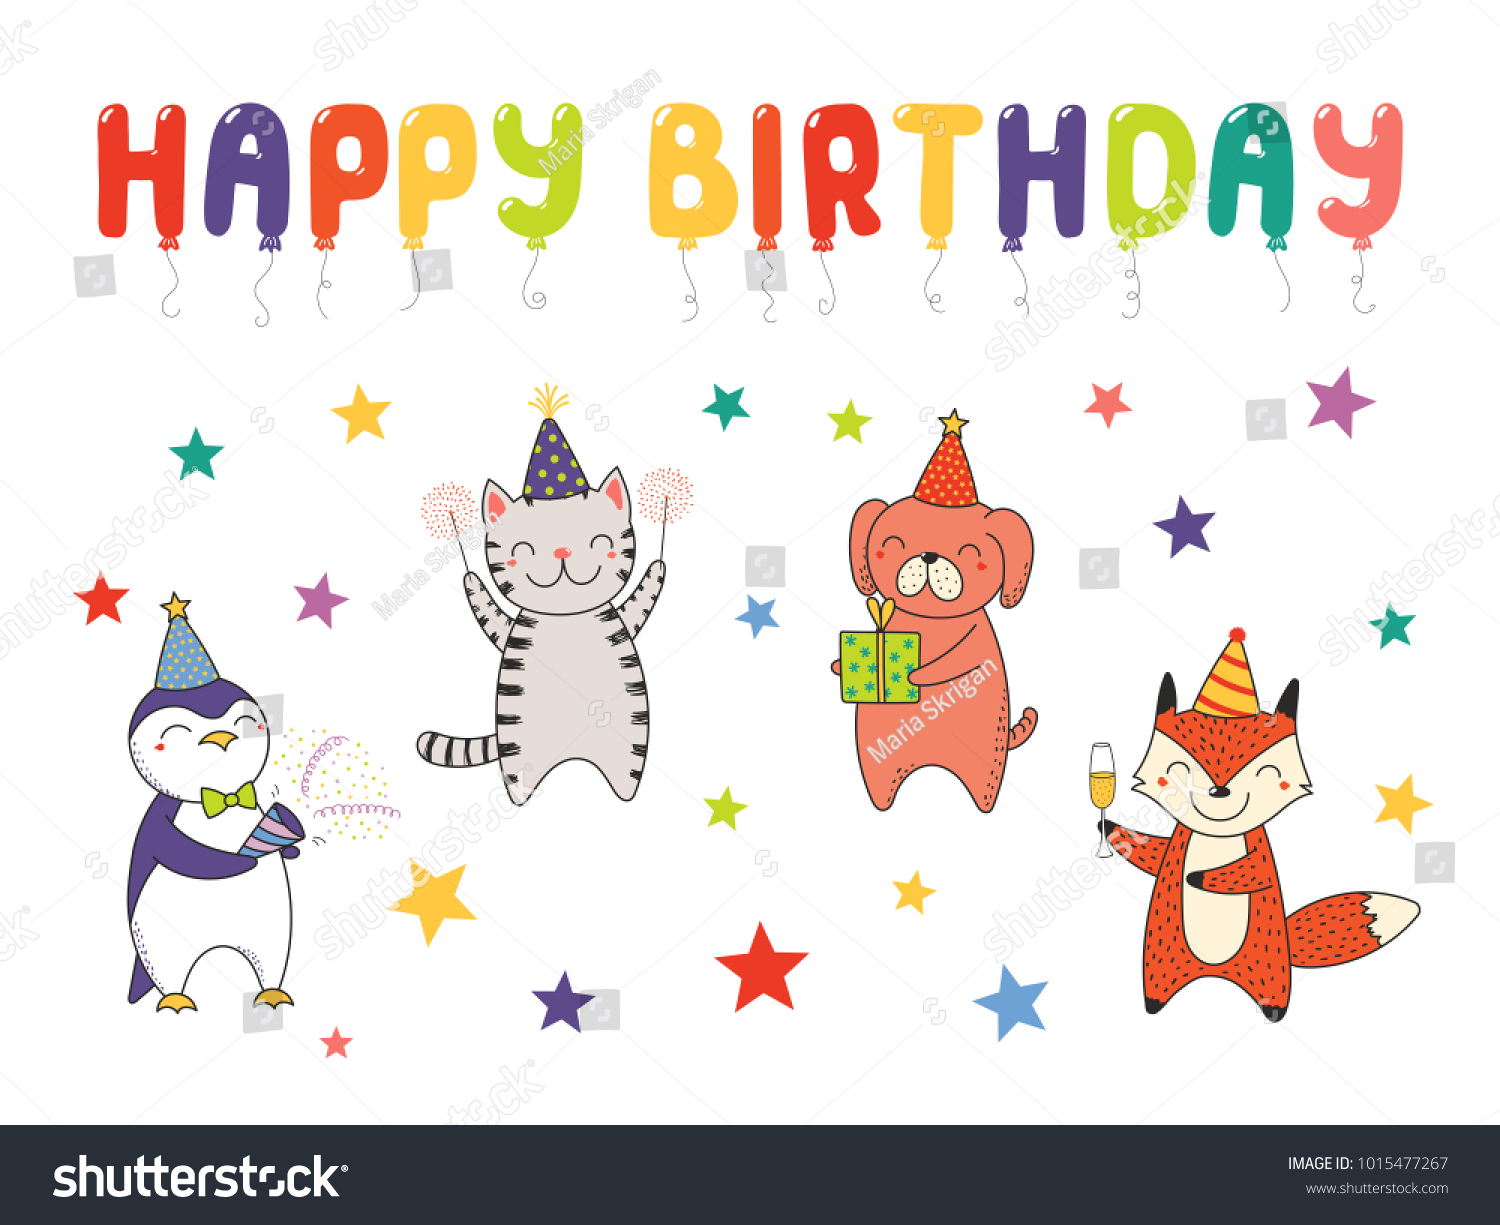 Hand Drawn Happy Birthday Greeting Card Banner Template With Cute